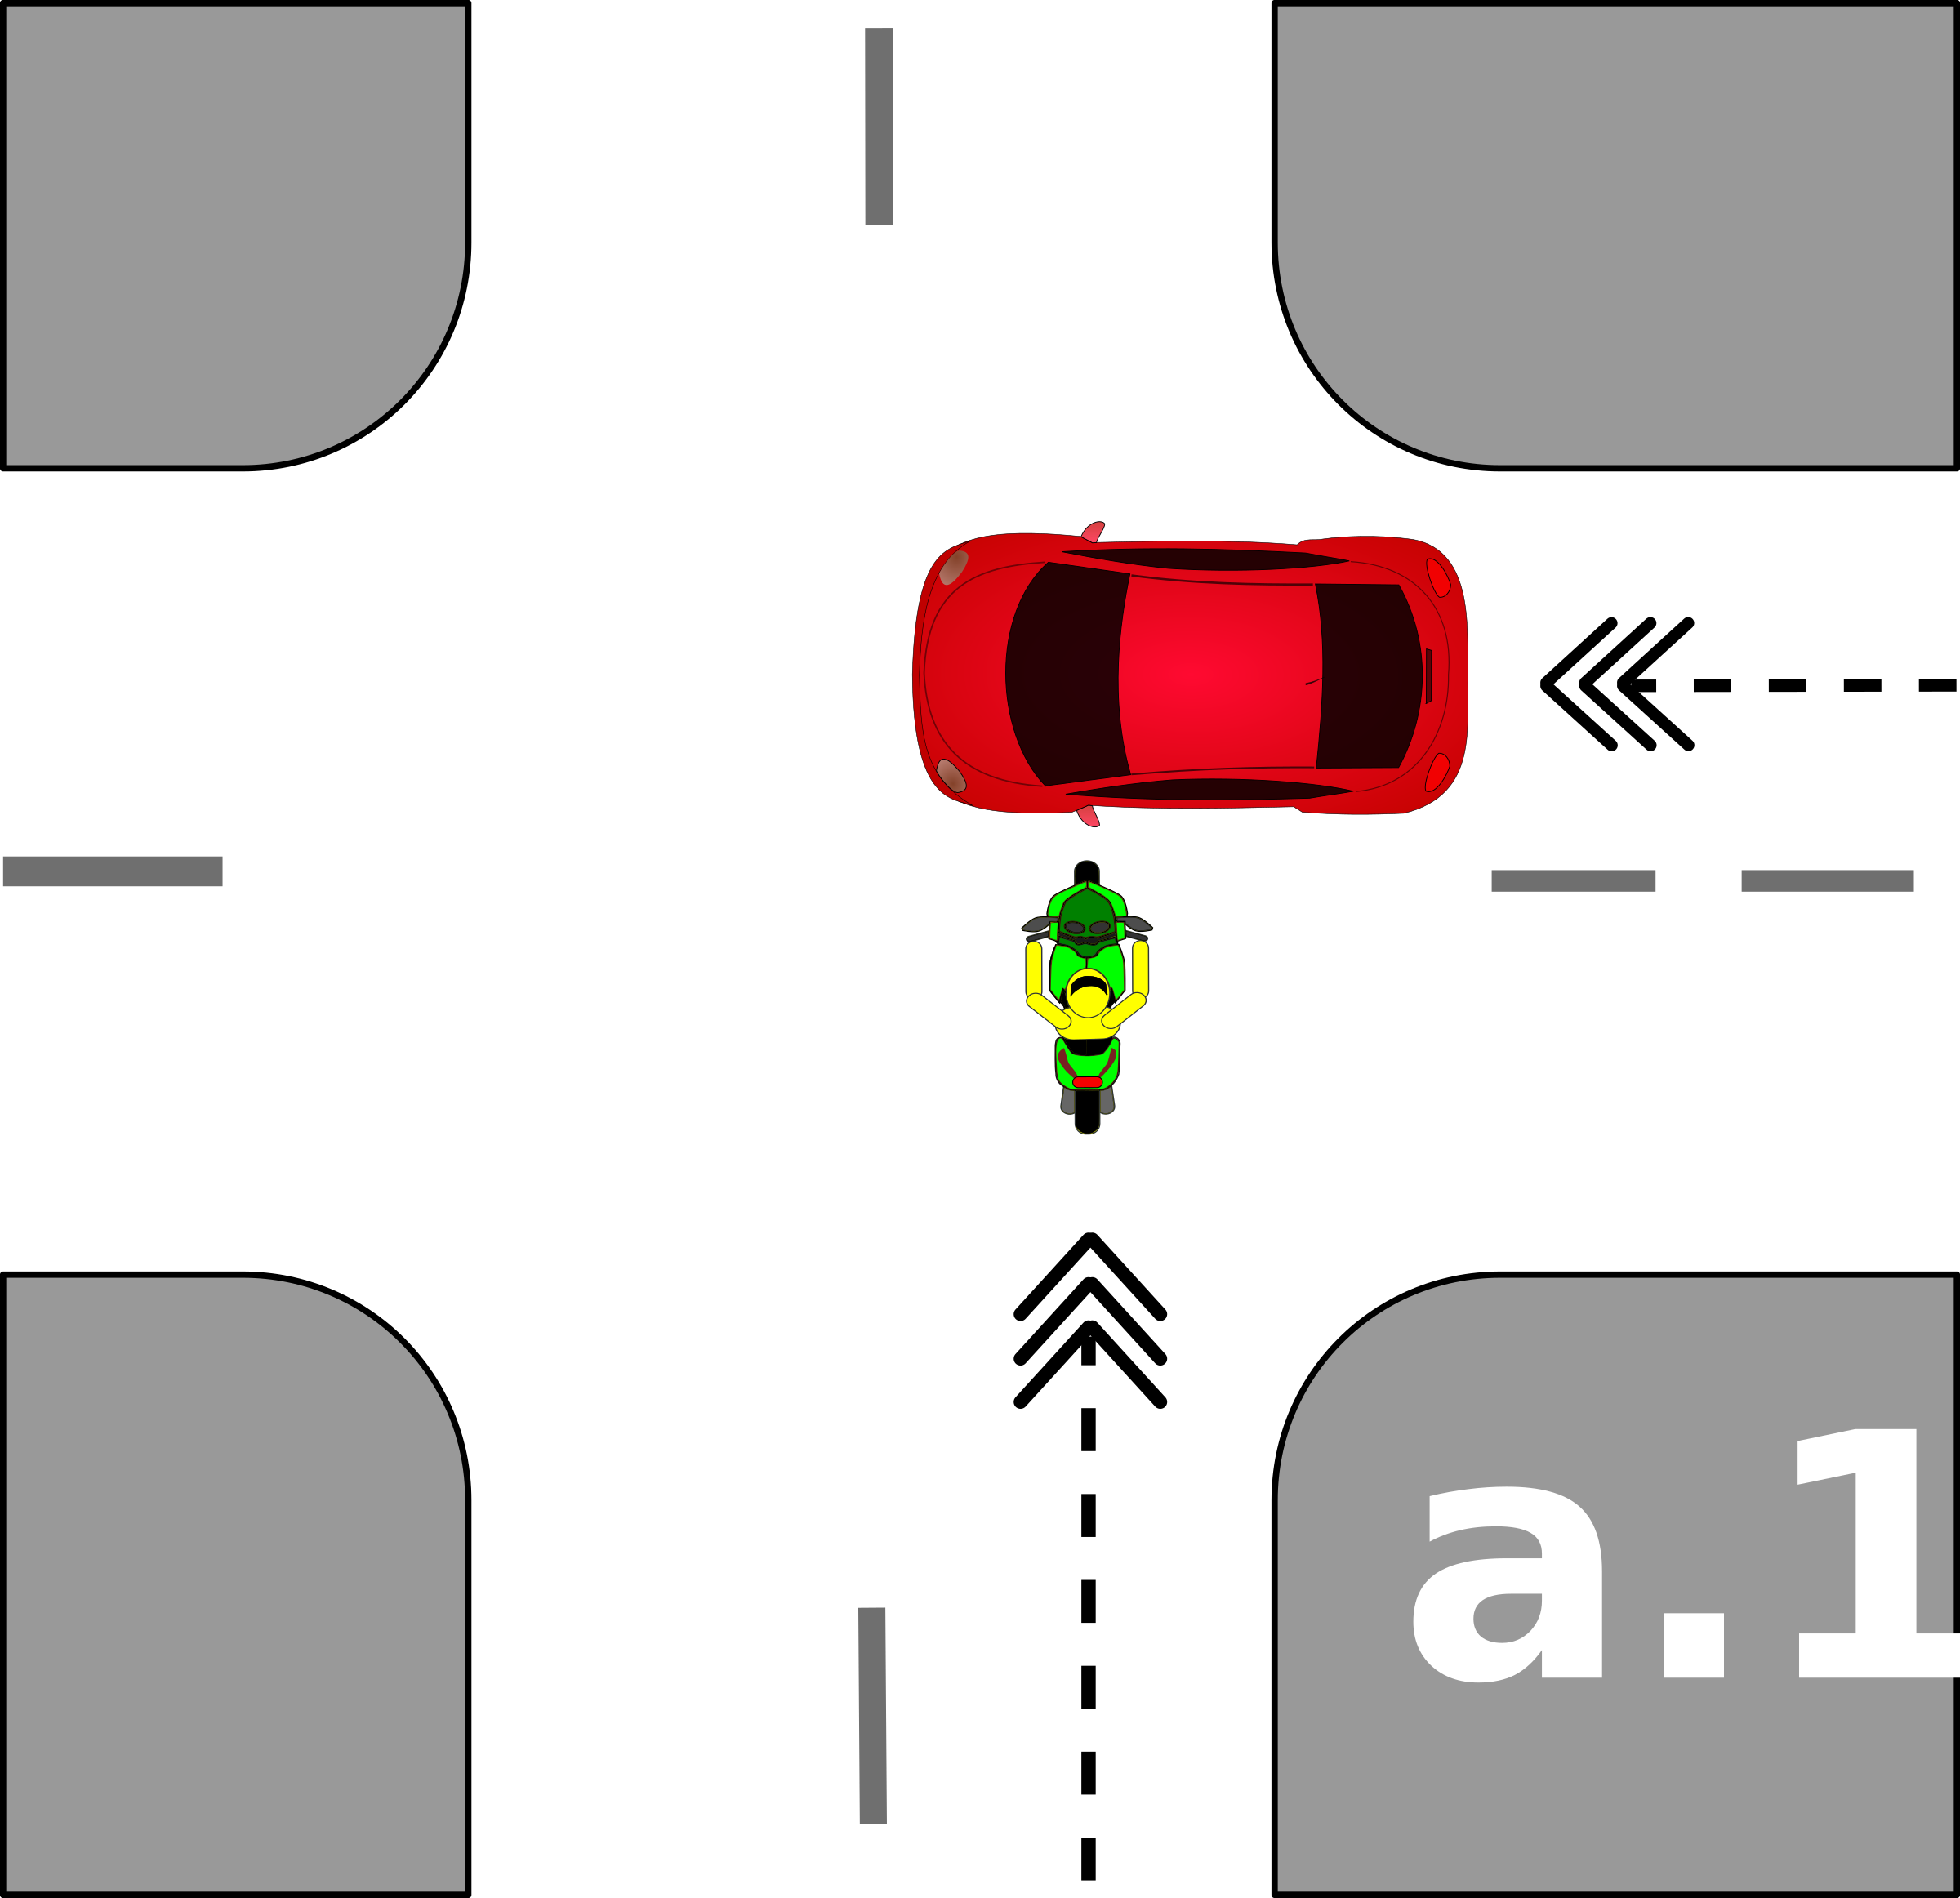 traffic accident pictograms a.1 by Gusta